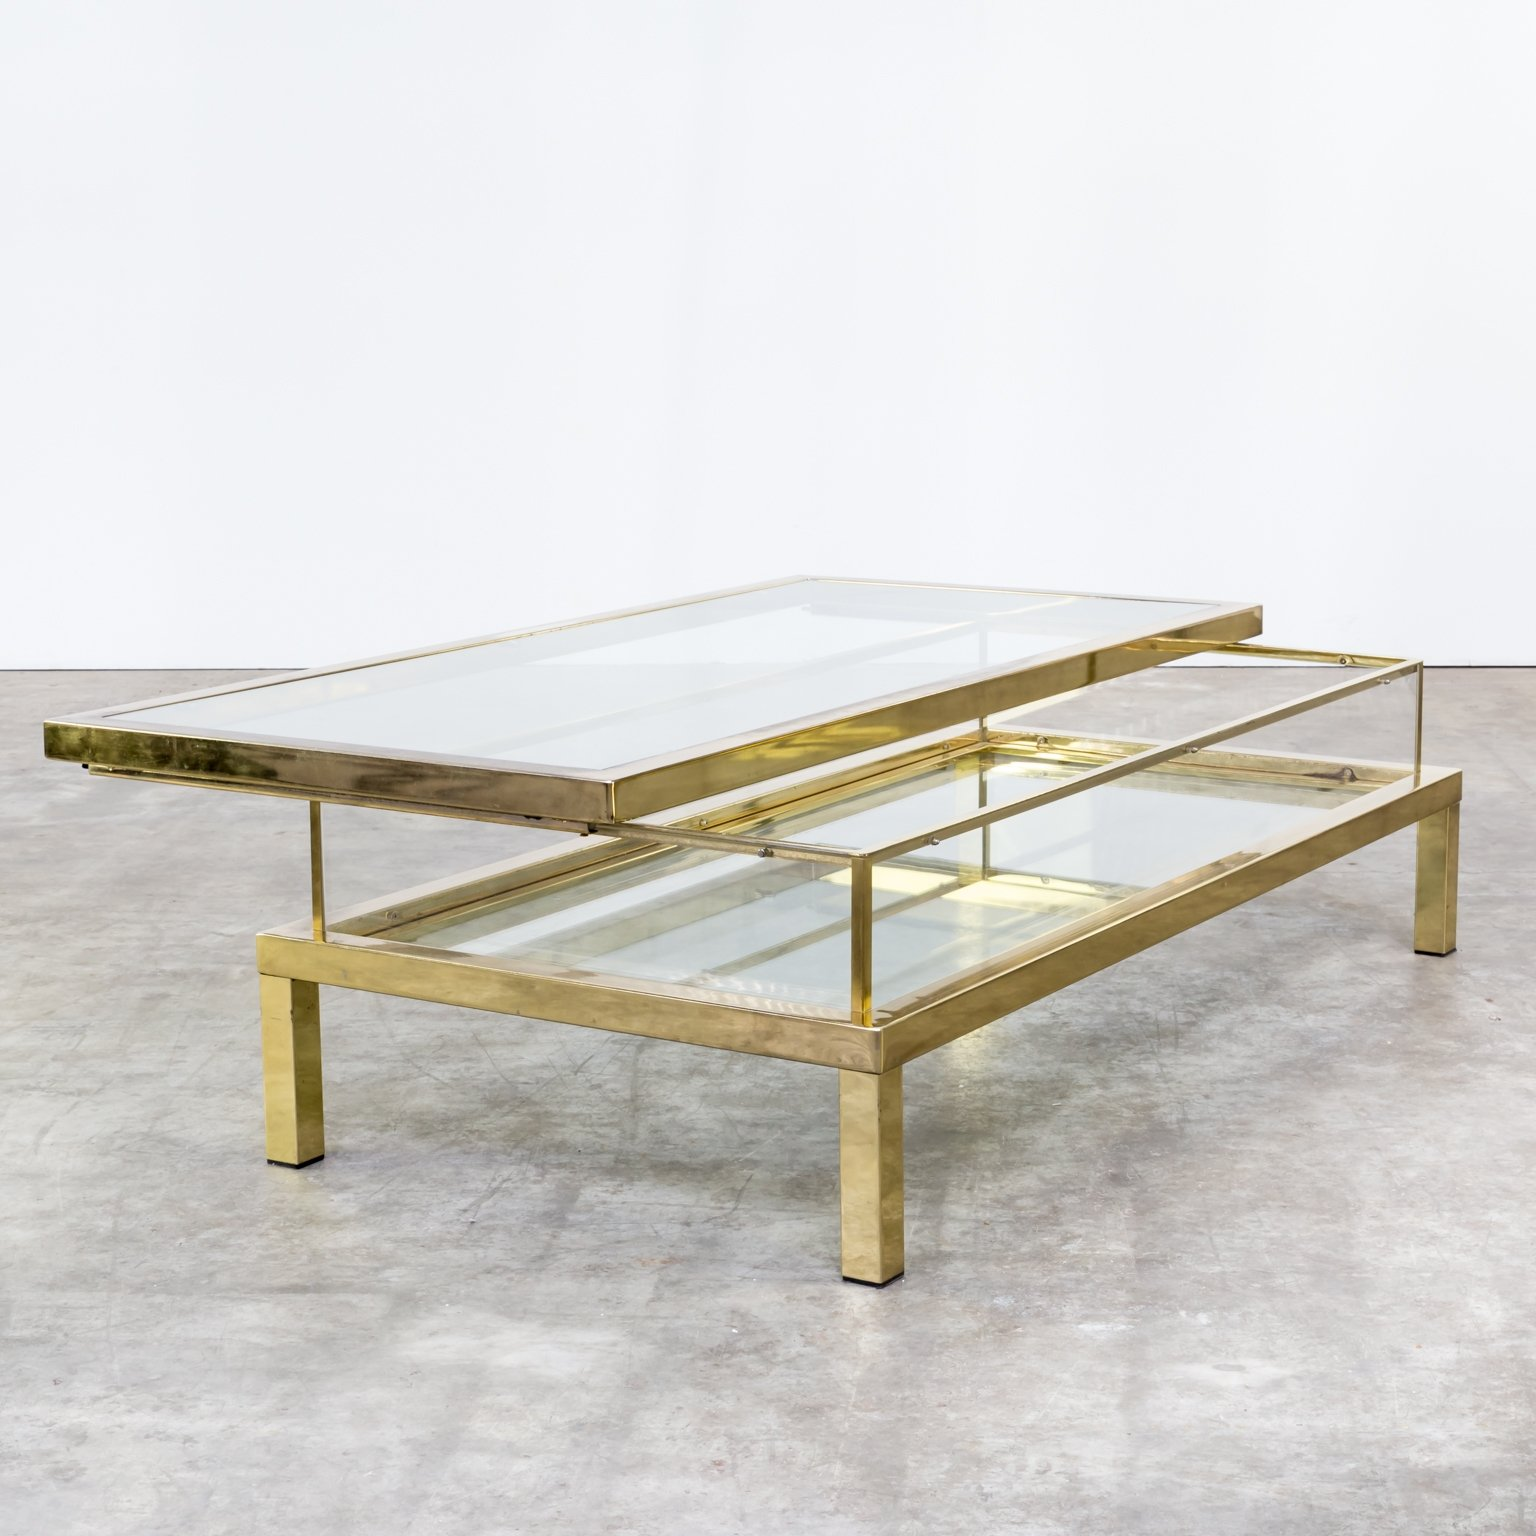 Maison Jansen Coffee Table, 1950s